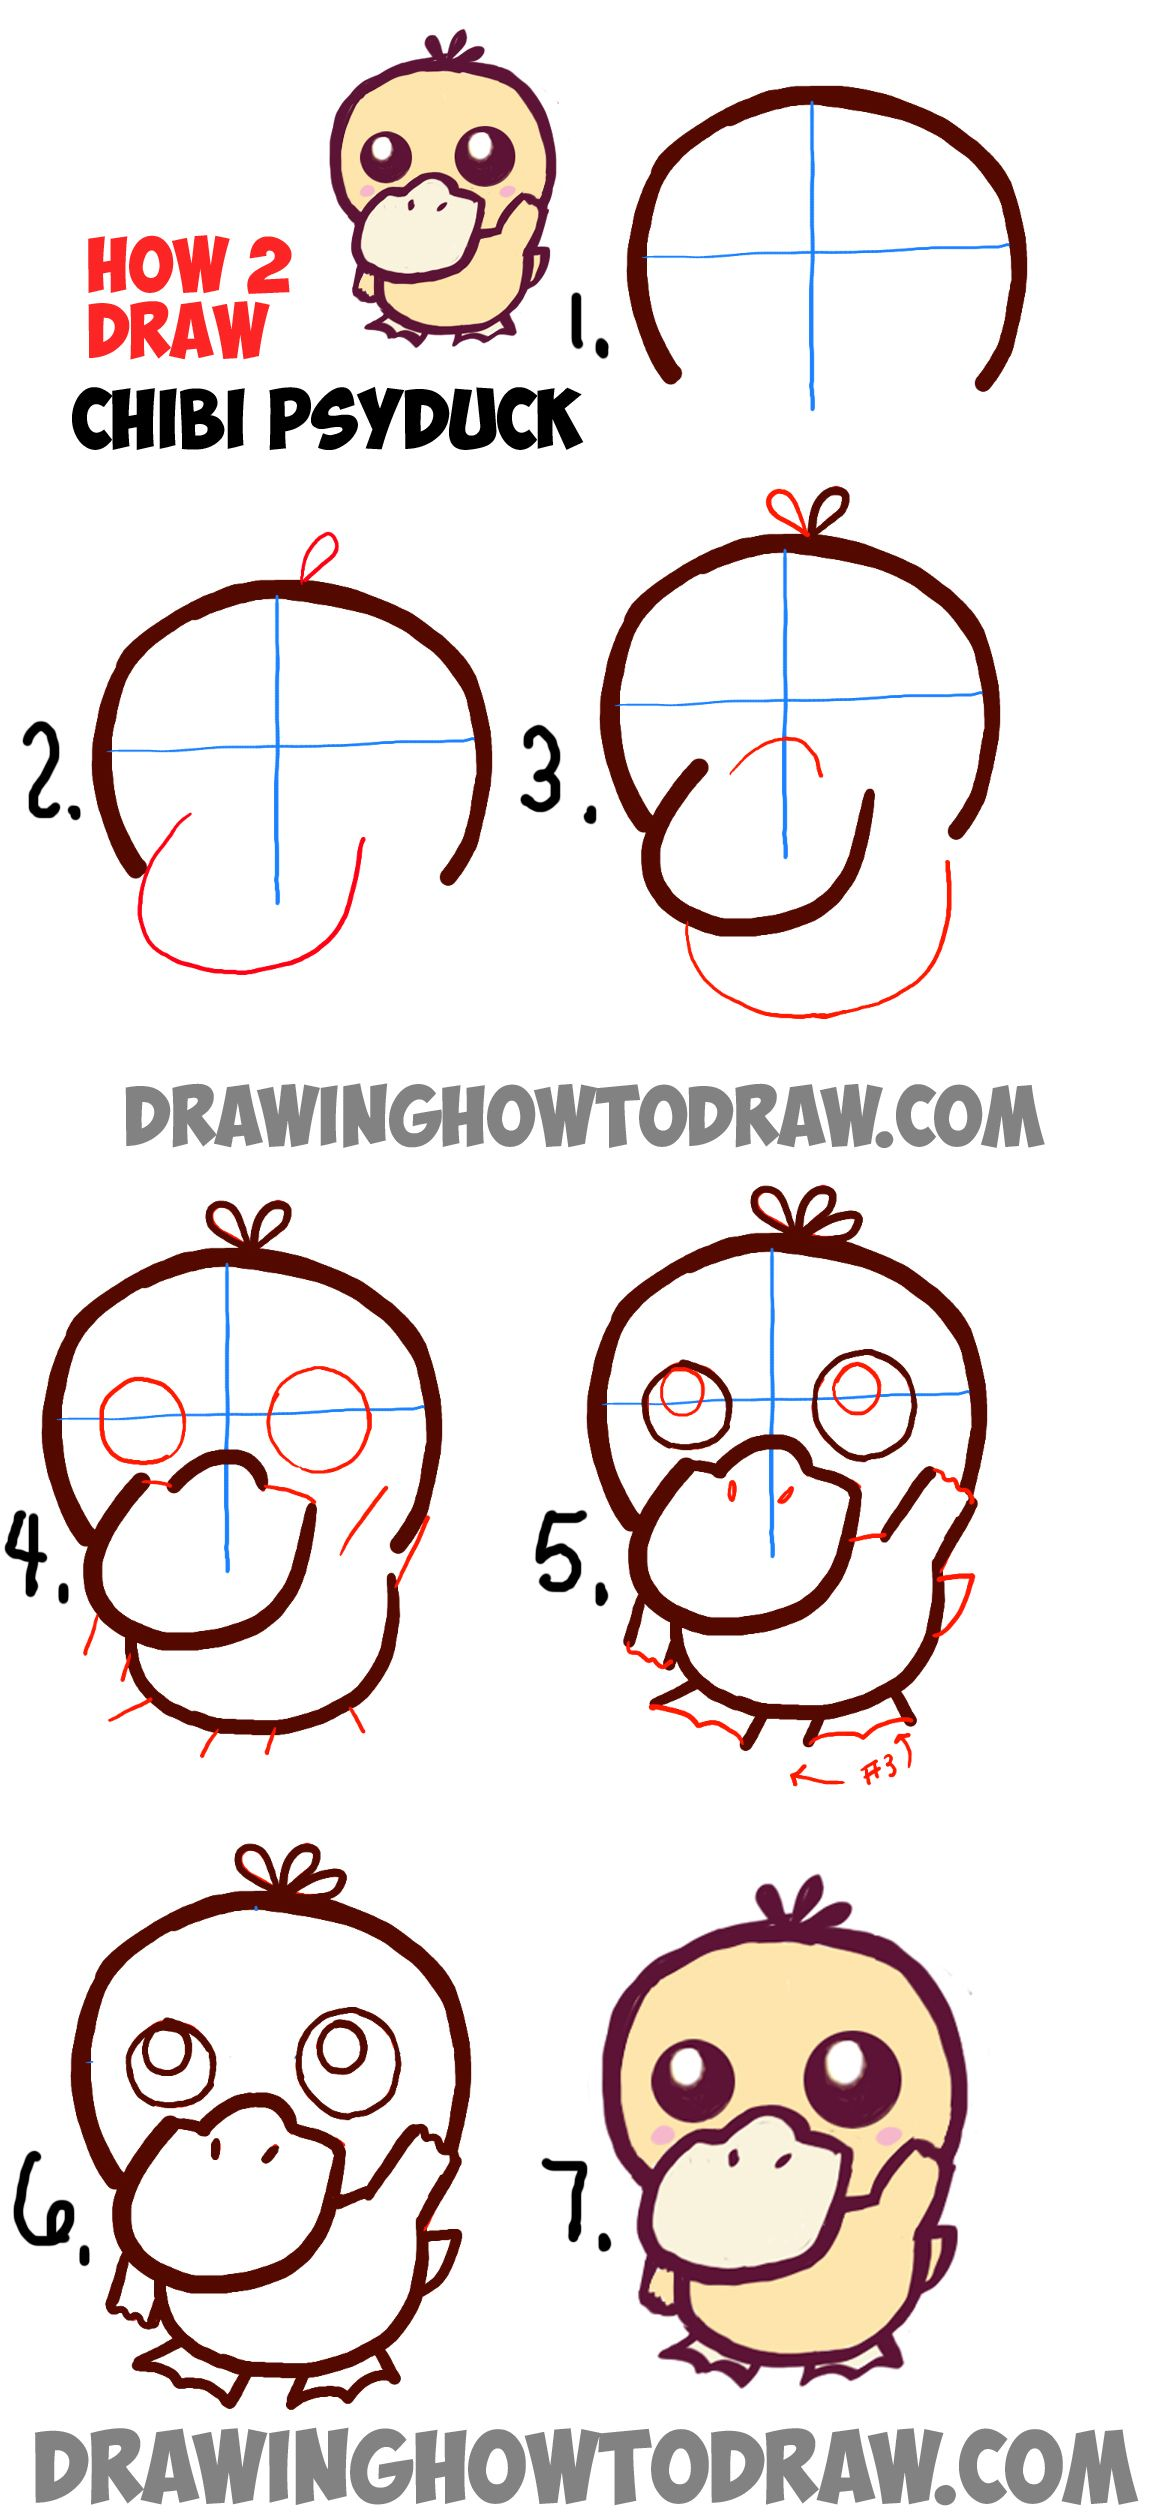 How to Draw a Cute Baby Chibi Psyduck from Pokemon in Easy Steps ...